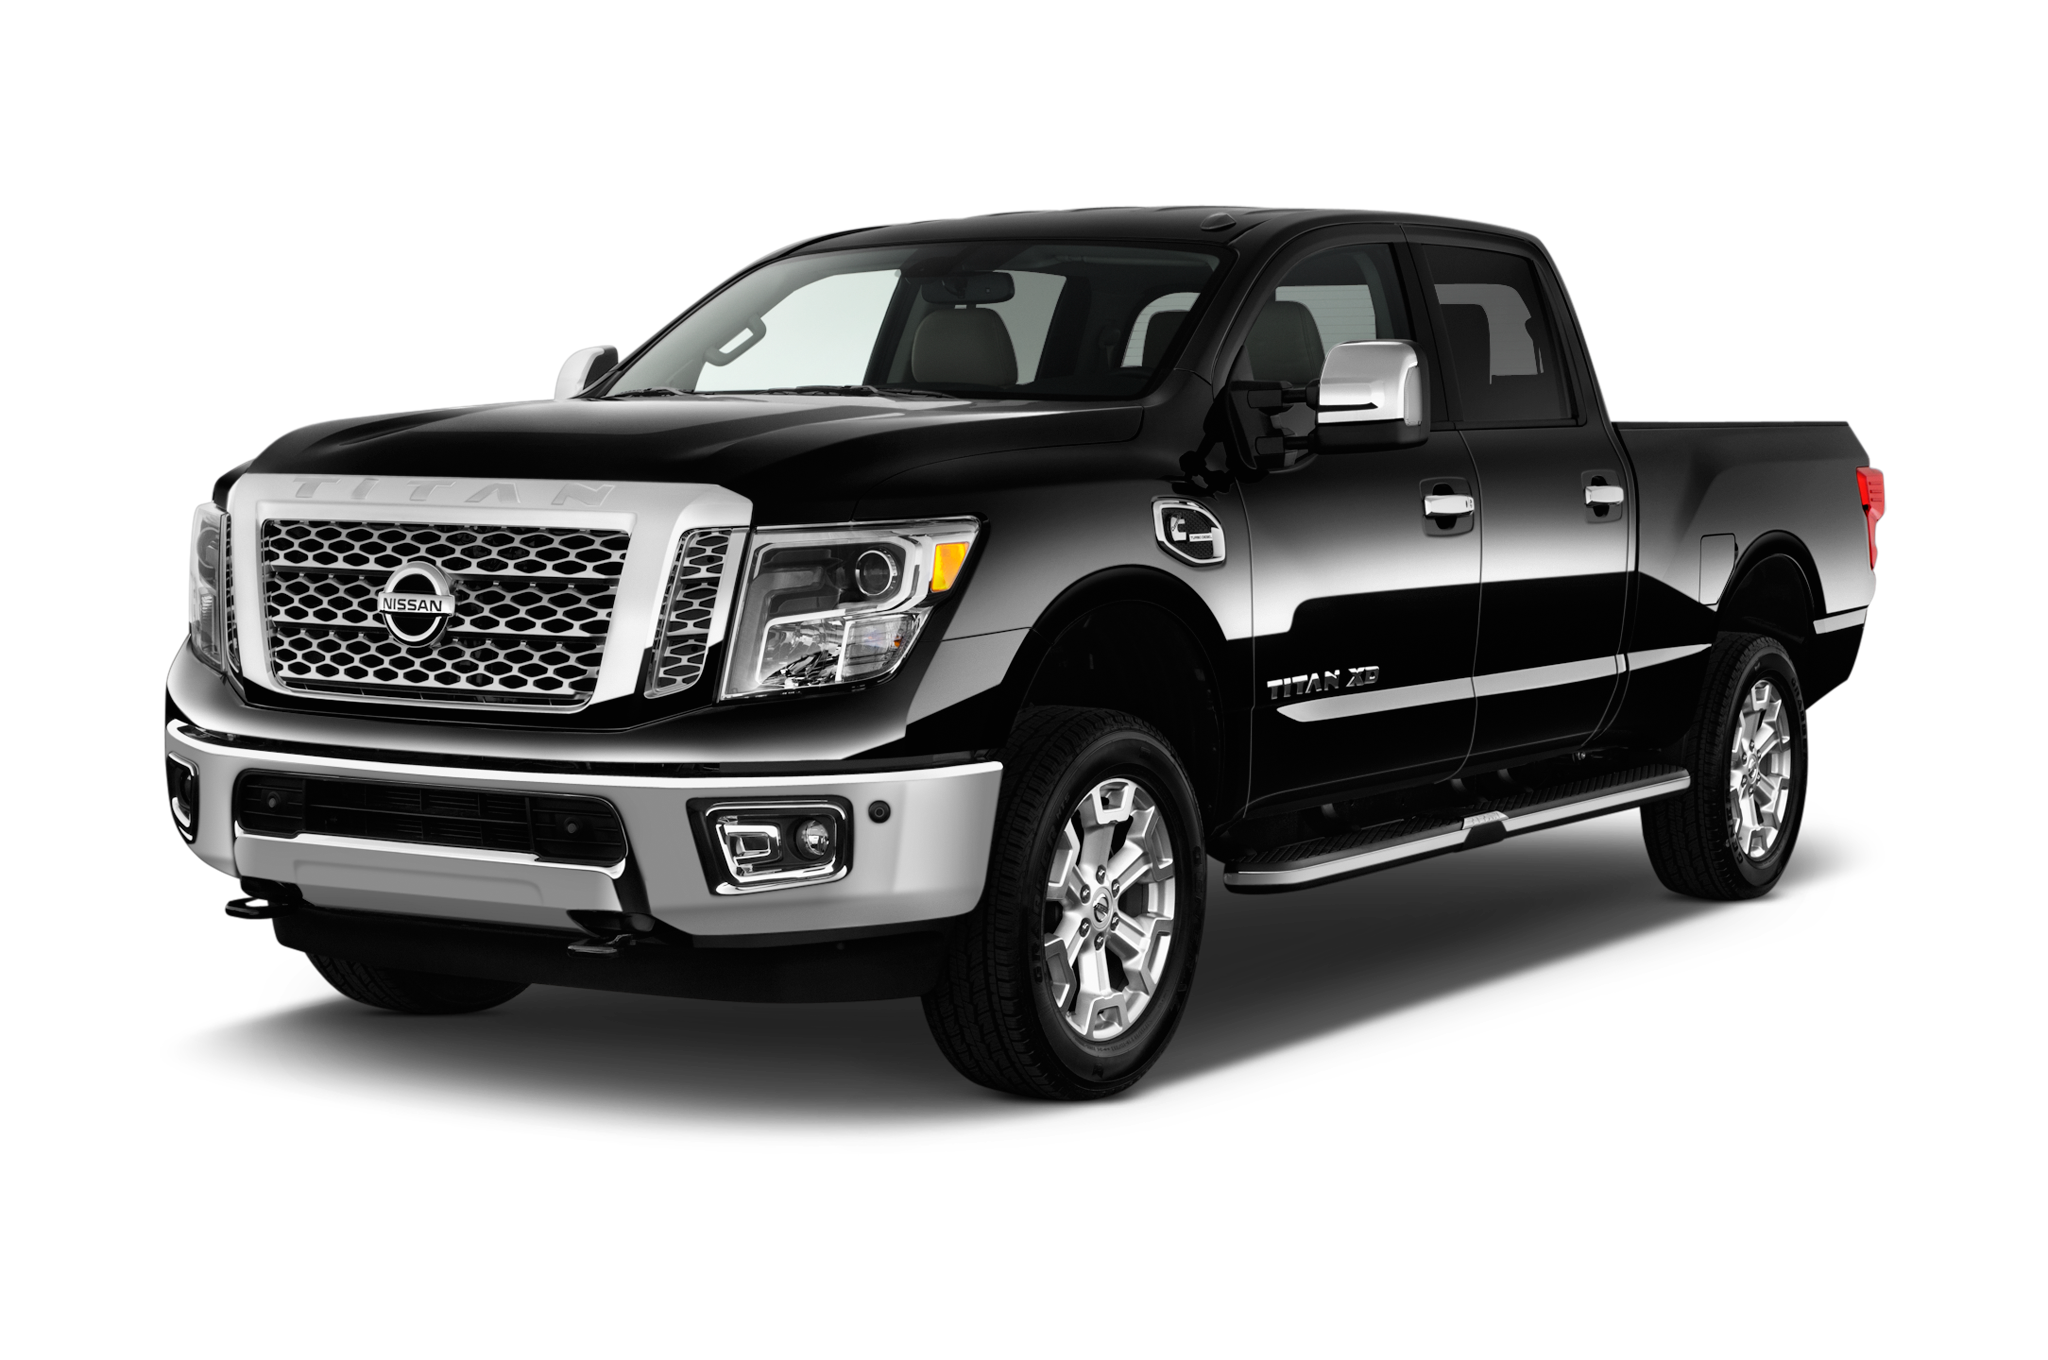 2017 nissan titan xd reviews and rating | motortrend